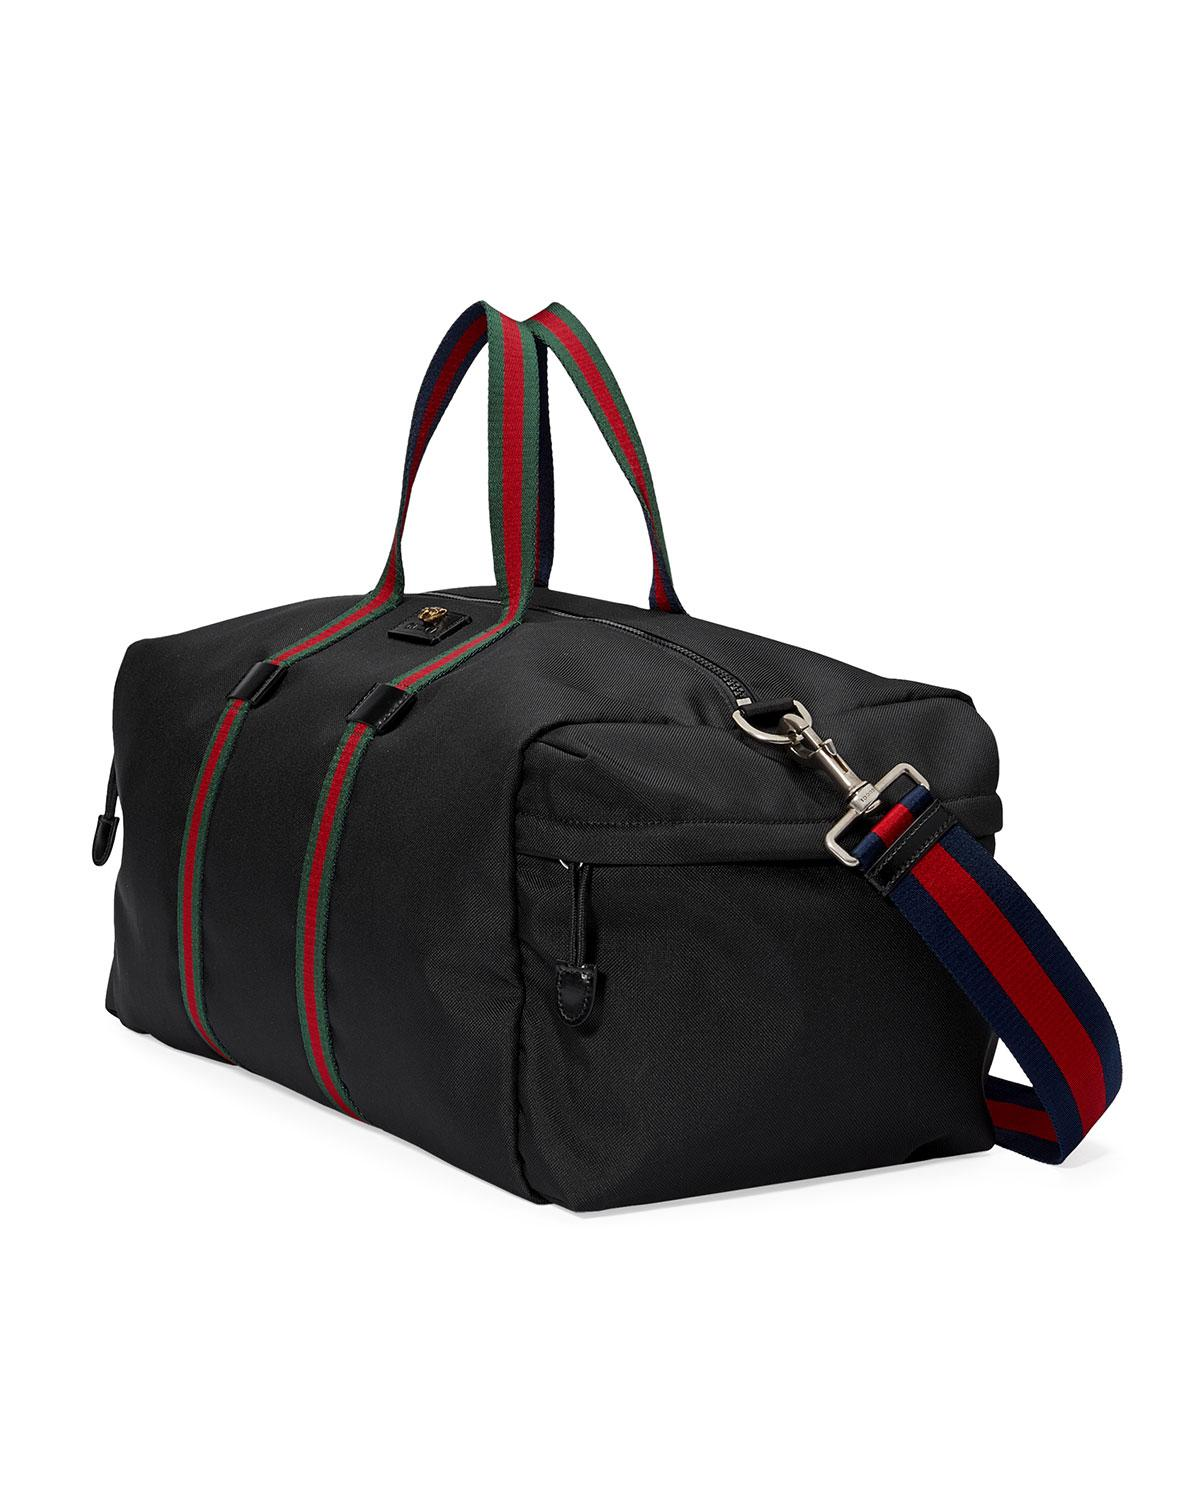 8a7f21274390cb Gucci Technical Canvas Duffle Bag in Black for Men - Lyst